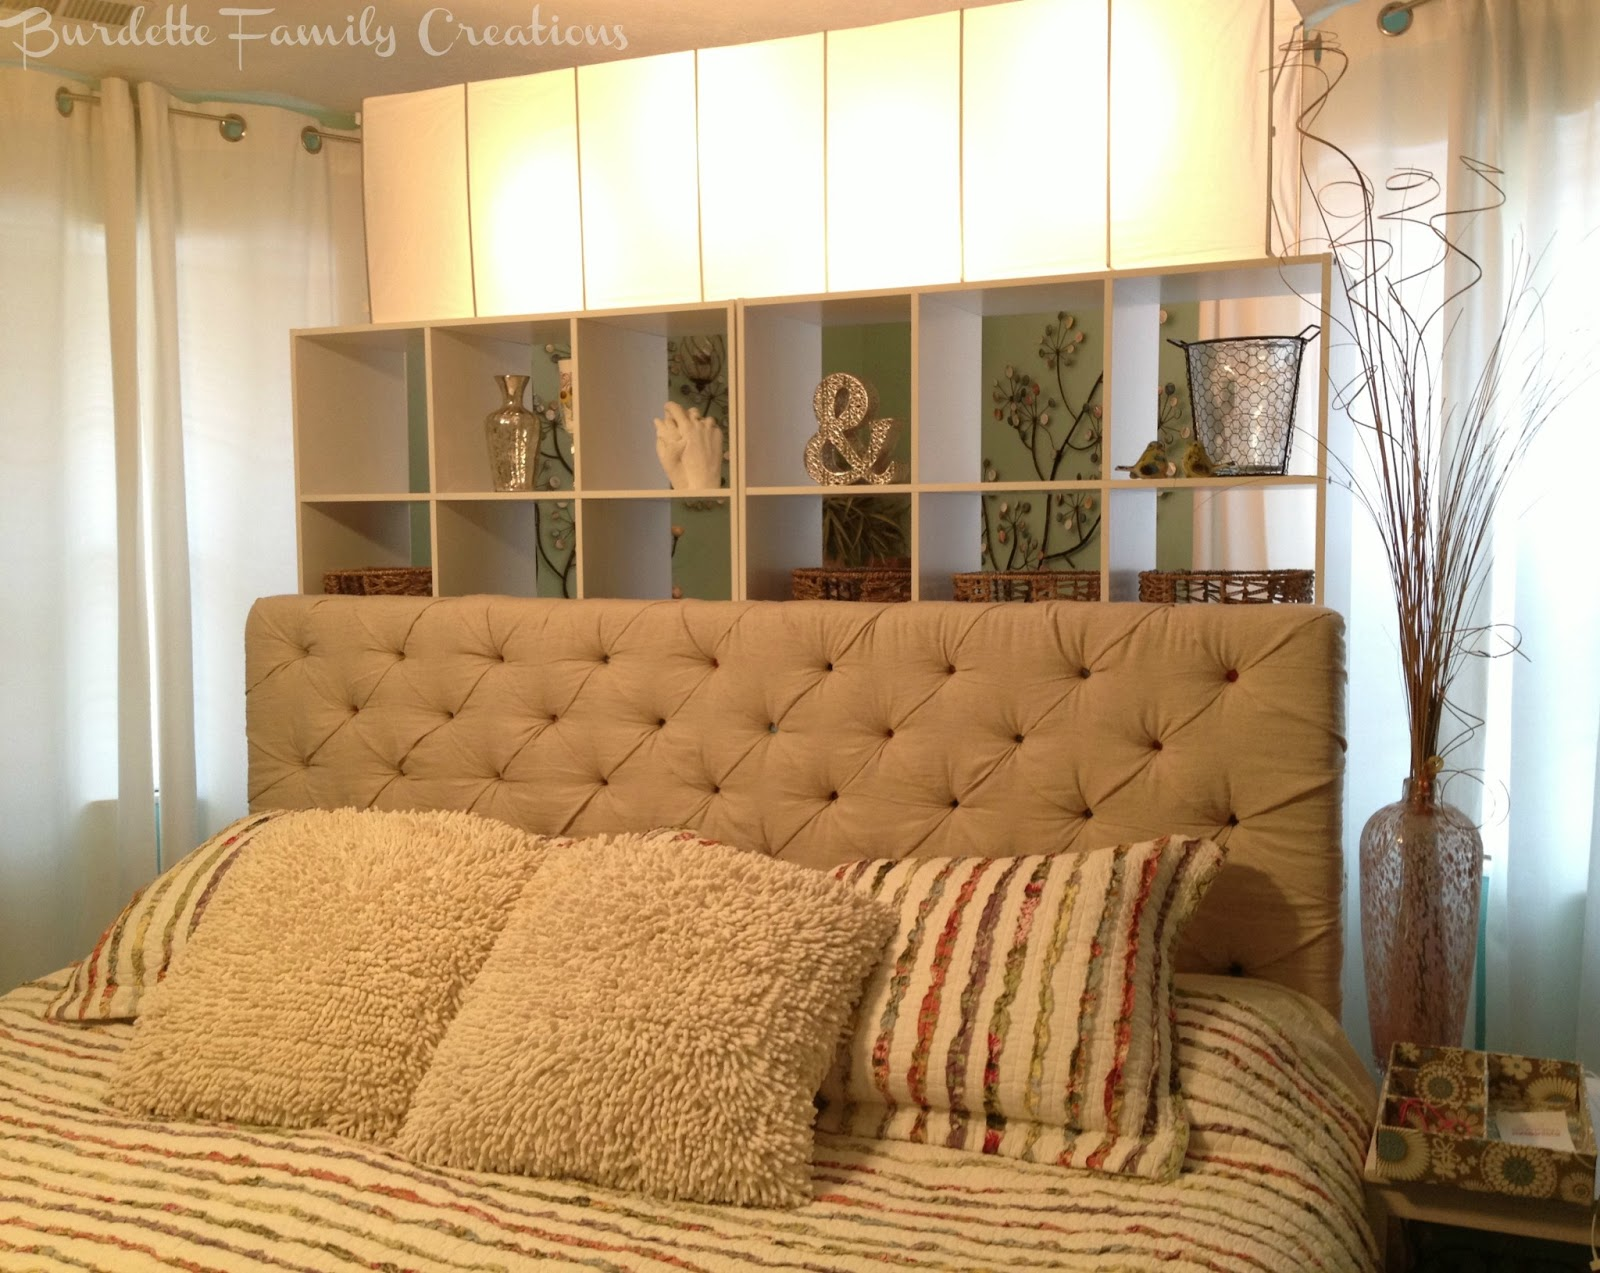 Burdette Family Creations: My DIY Tufted King Headboard